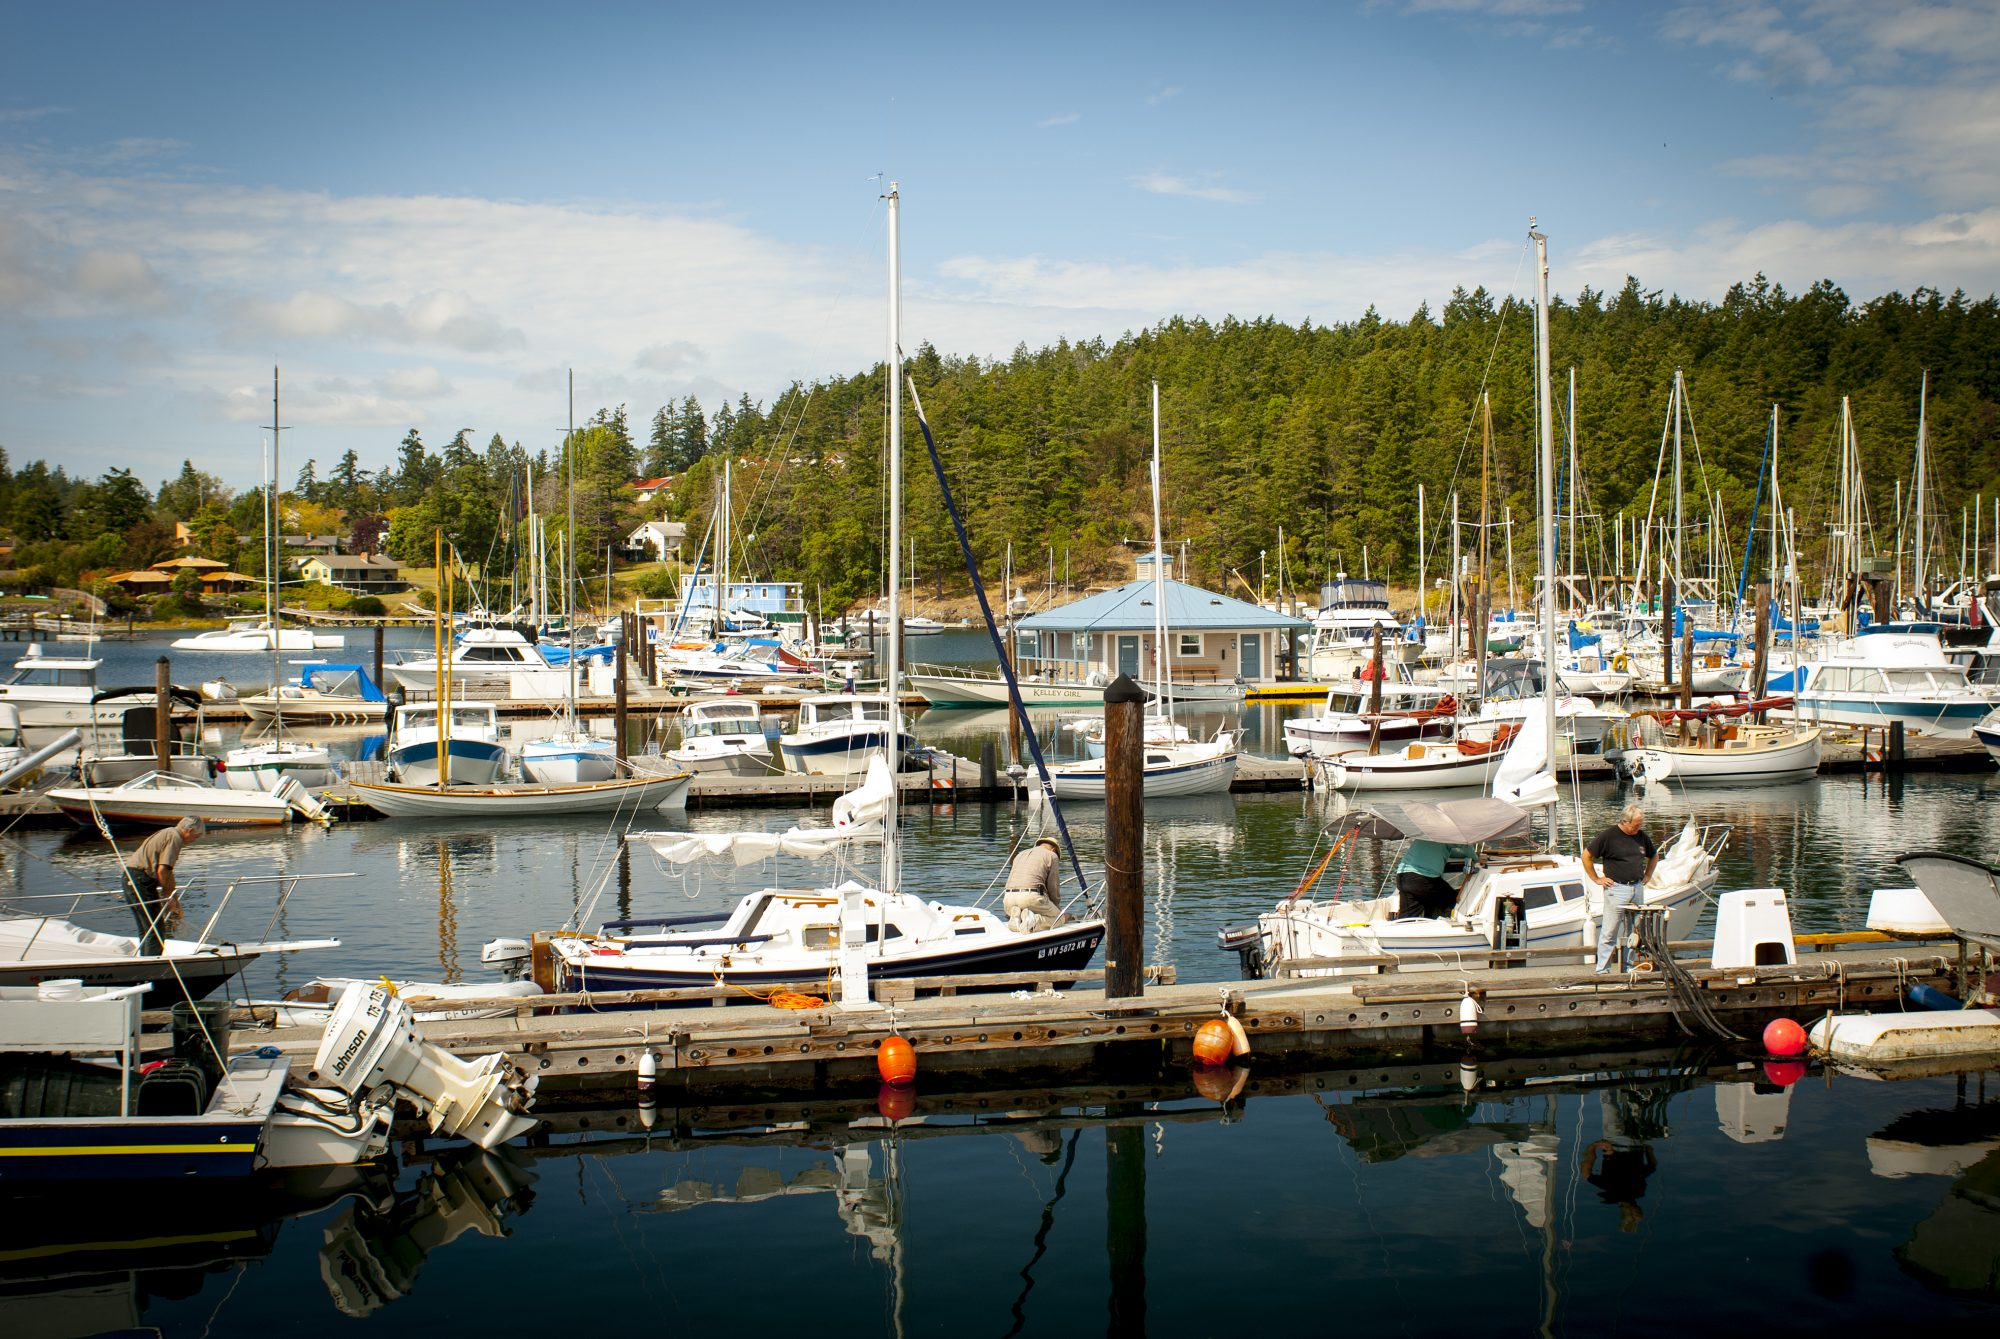 Amid the striking beauty of the San Juan Islands, this historic little seaport on San Juan Island itself buzzes sweetly with a lively little downtown and waterfront with rich farmland surrounding it all. And if that weren't enough, beyond lie the prospect of orcas and eagles against the backdrop of the Olympic Mountains.